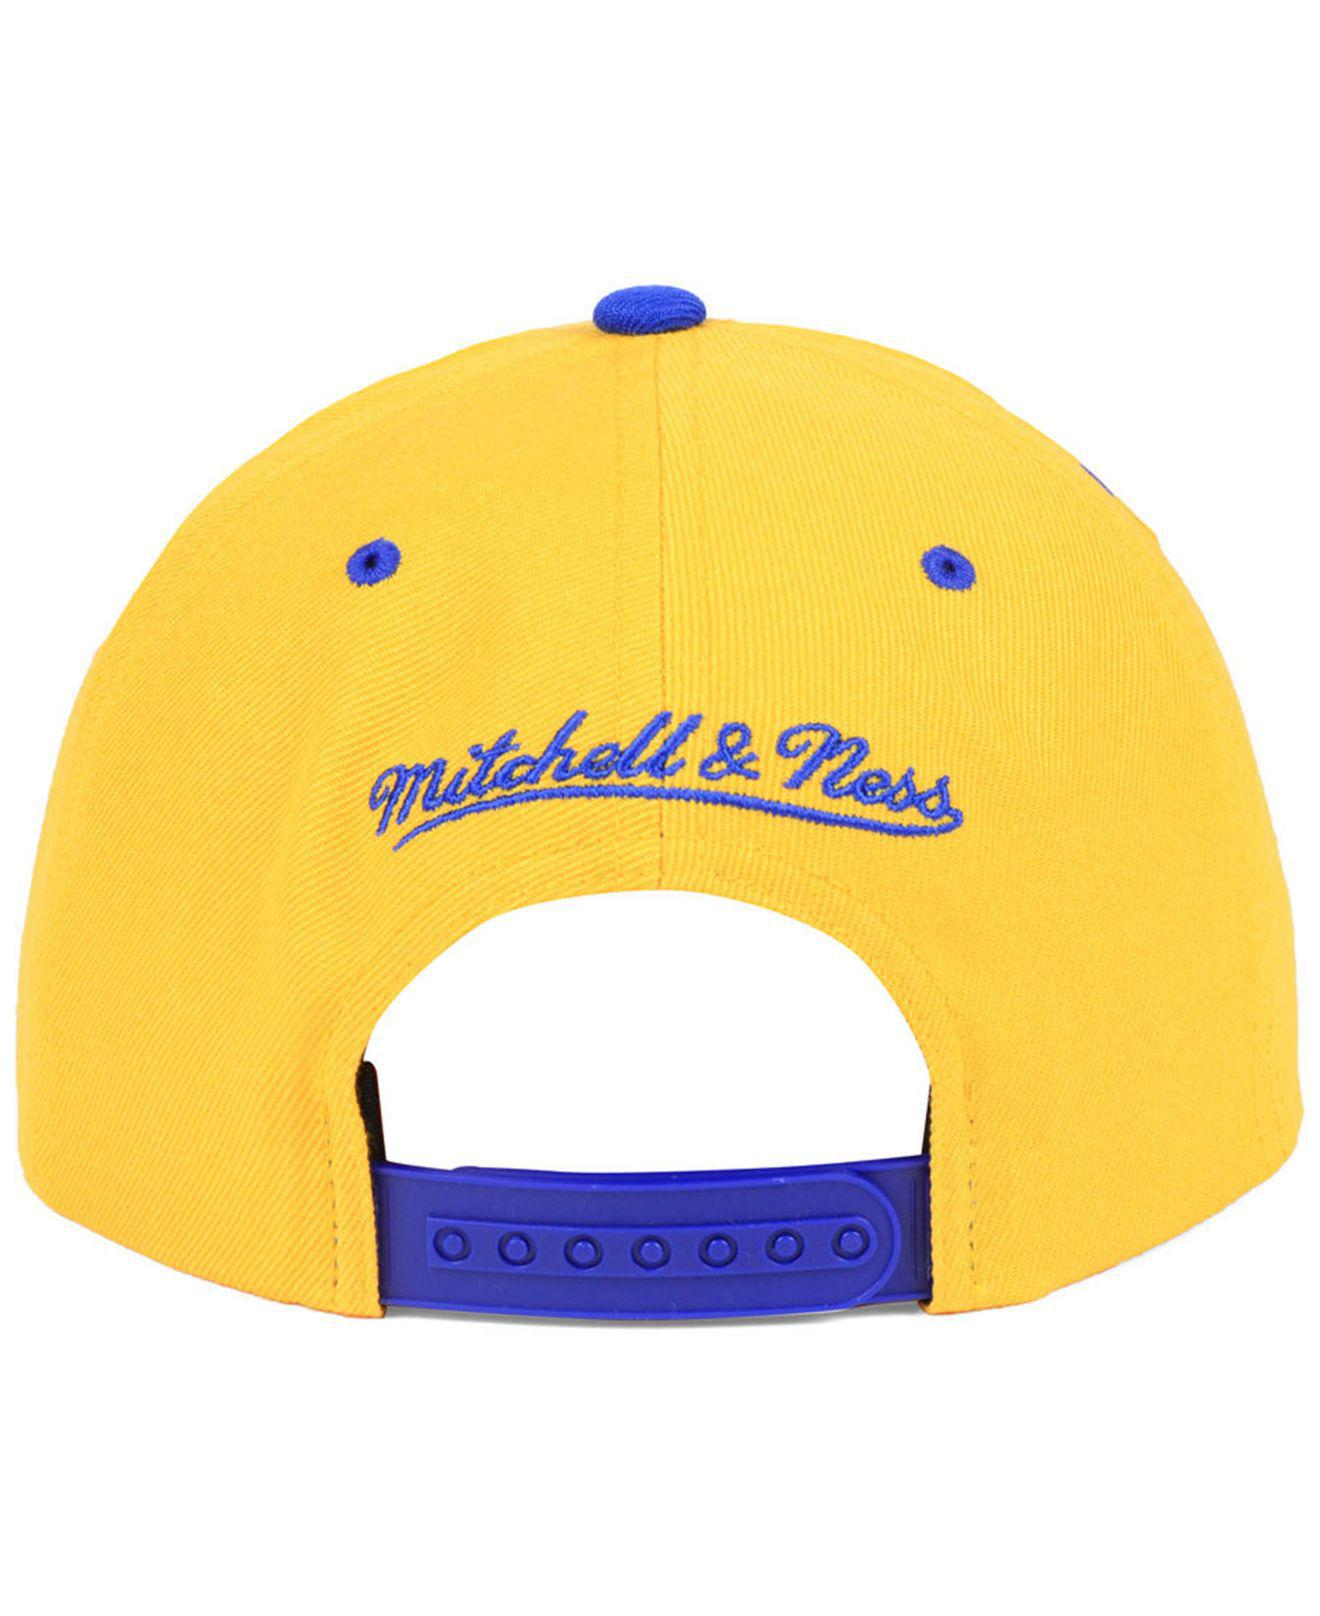 1bf20819cc53cb ... cheapest lyst mitchell ness golden state warriors dripped snapback cap  12313 8ef88